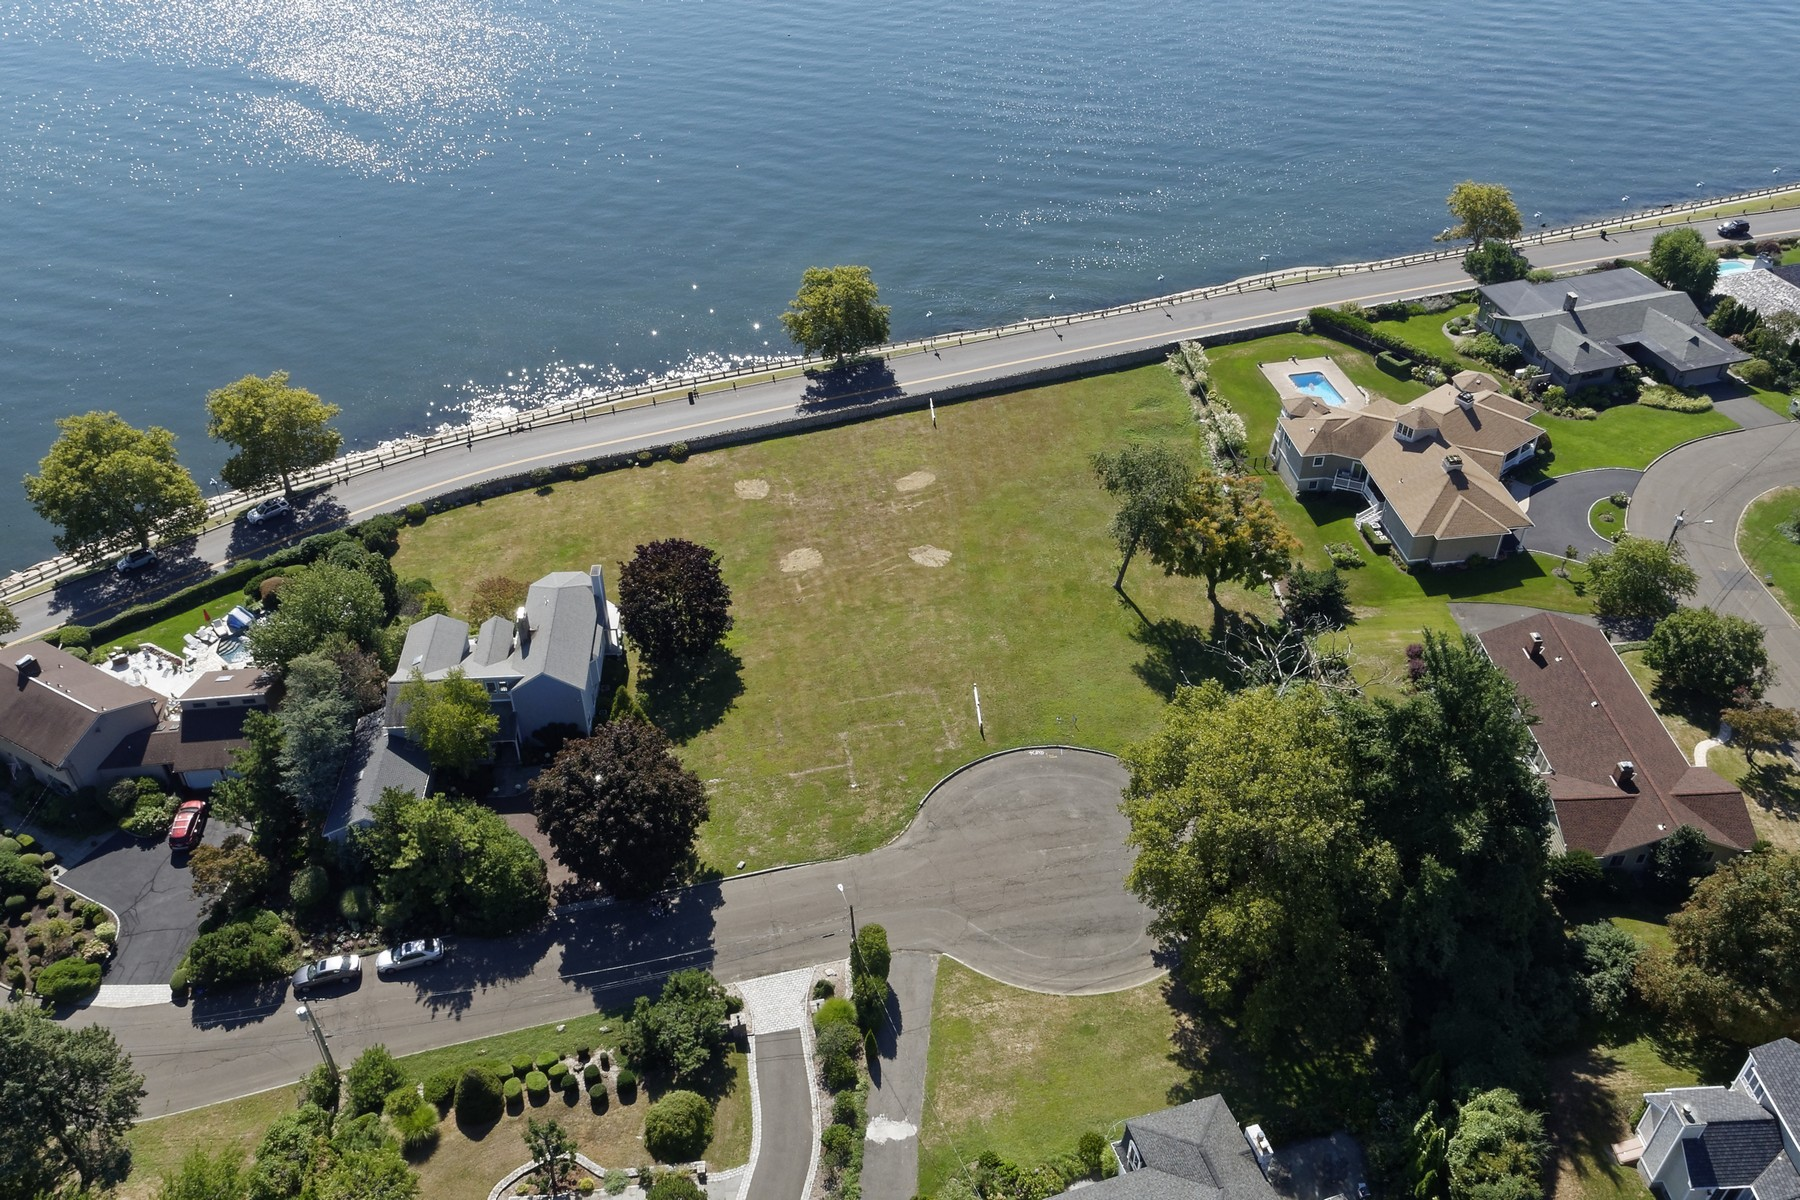 Terreno para Venda às Amazing Opportunity to Build Your Waterfront Dream Home in St. Mary's by the Sea 69 Armitage Drive Bridgeport, Connecticut, 06605 Estados Unidos